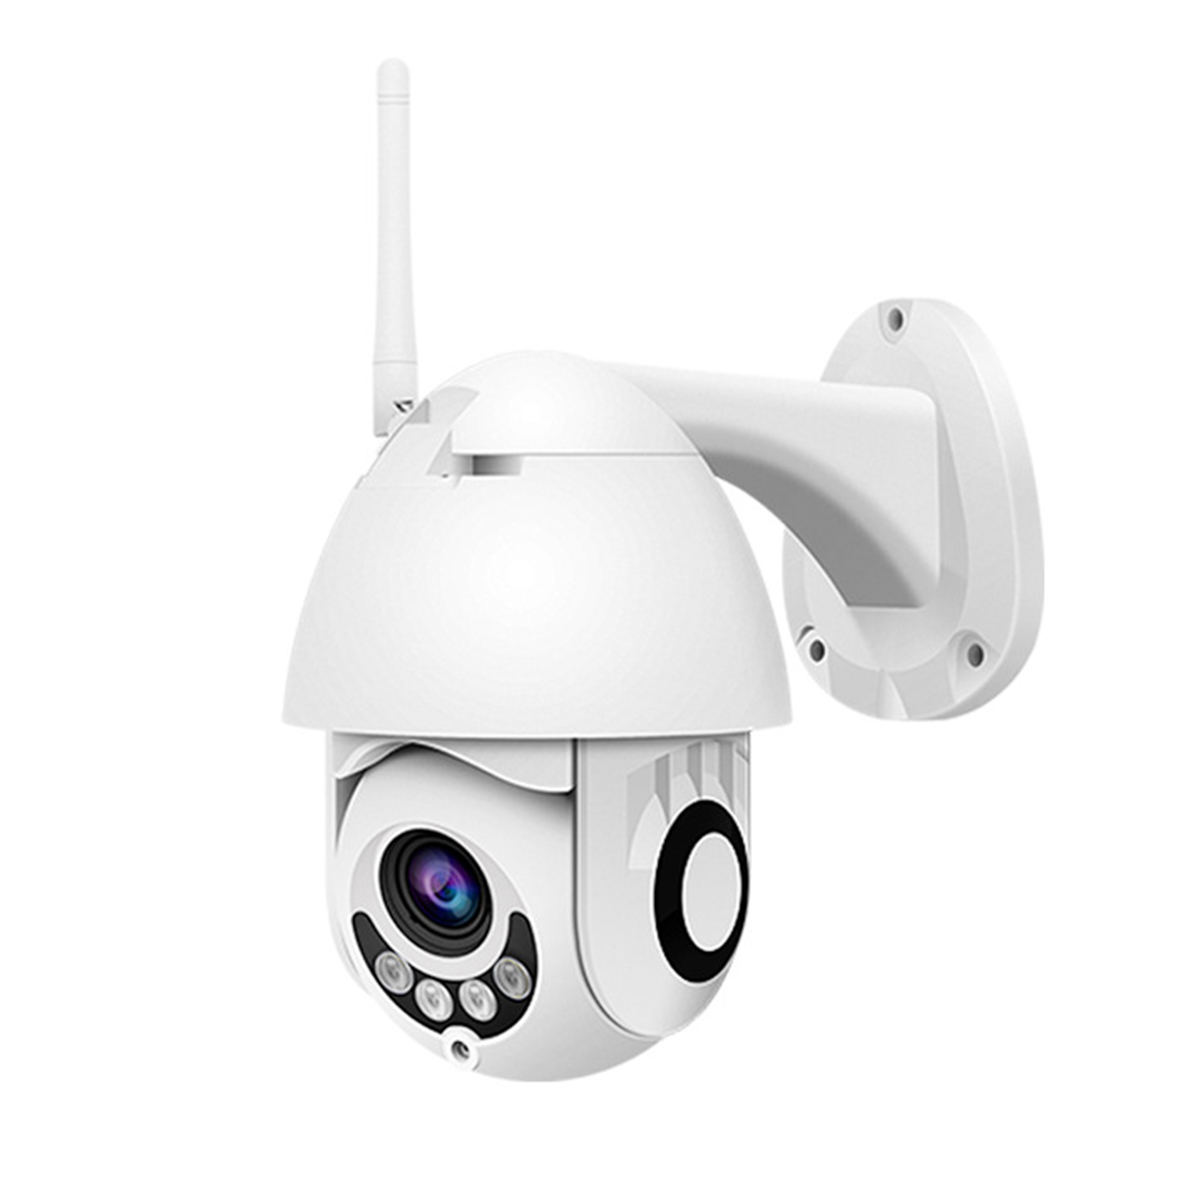 1080P HD Wireless WIFI IP Camera Outdoor CCTV Home Security IR Cam NVR Two Way Audio Motion Detection Night Vision TF Card1080P HD Wireless WIFI IP Camera Outdoor CCTV Home Security IR Cam NVR Two Way Audio Motion Detection Night Vision TF Card